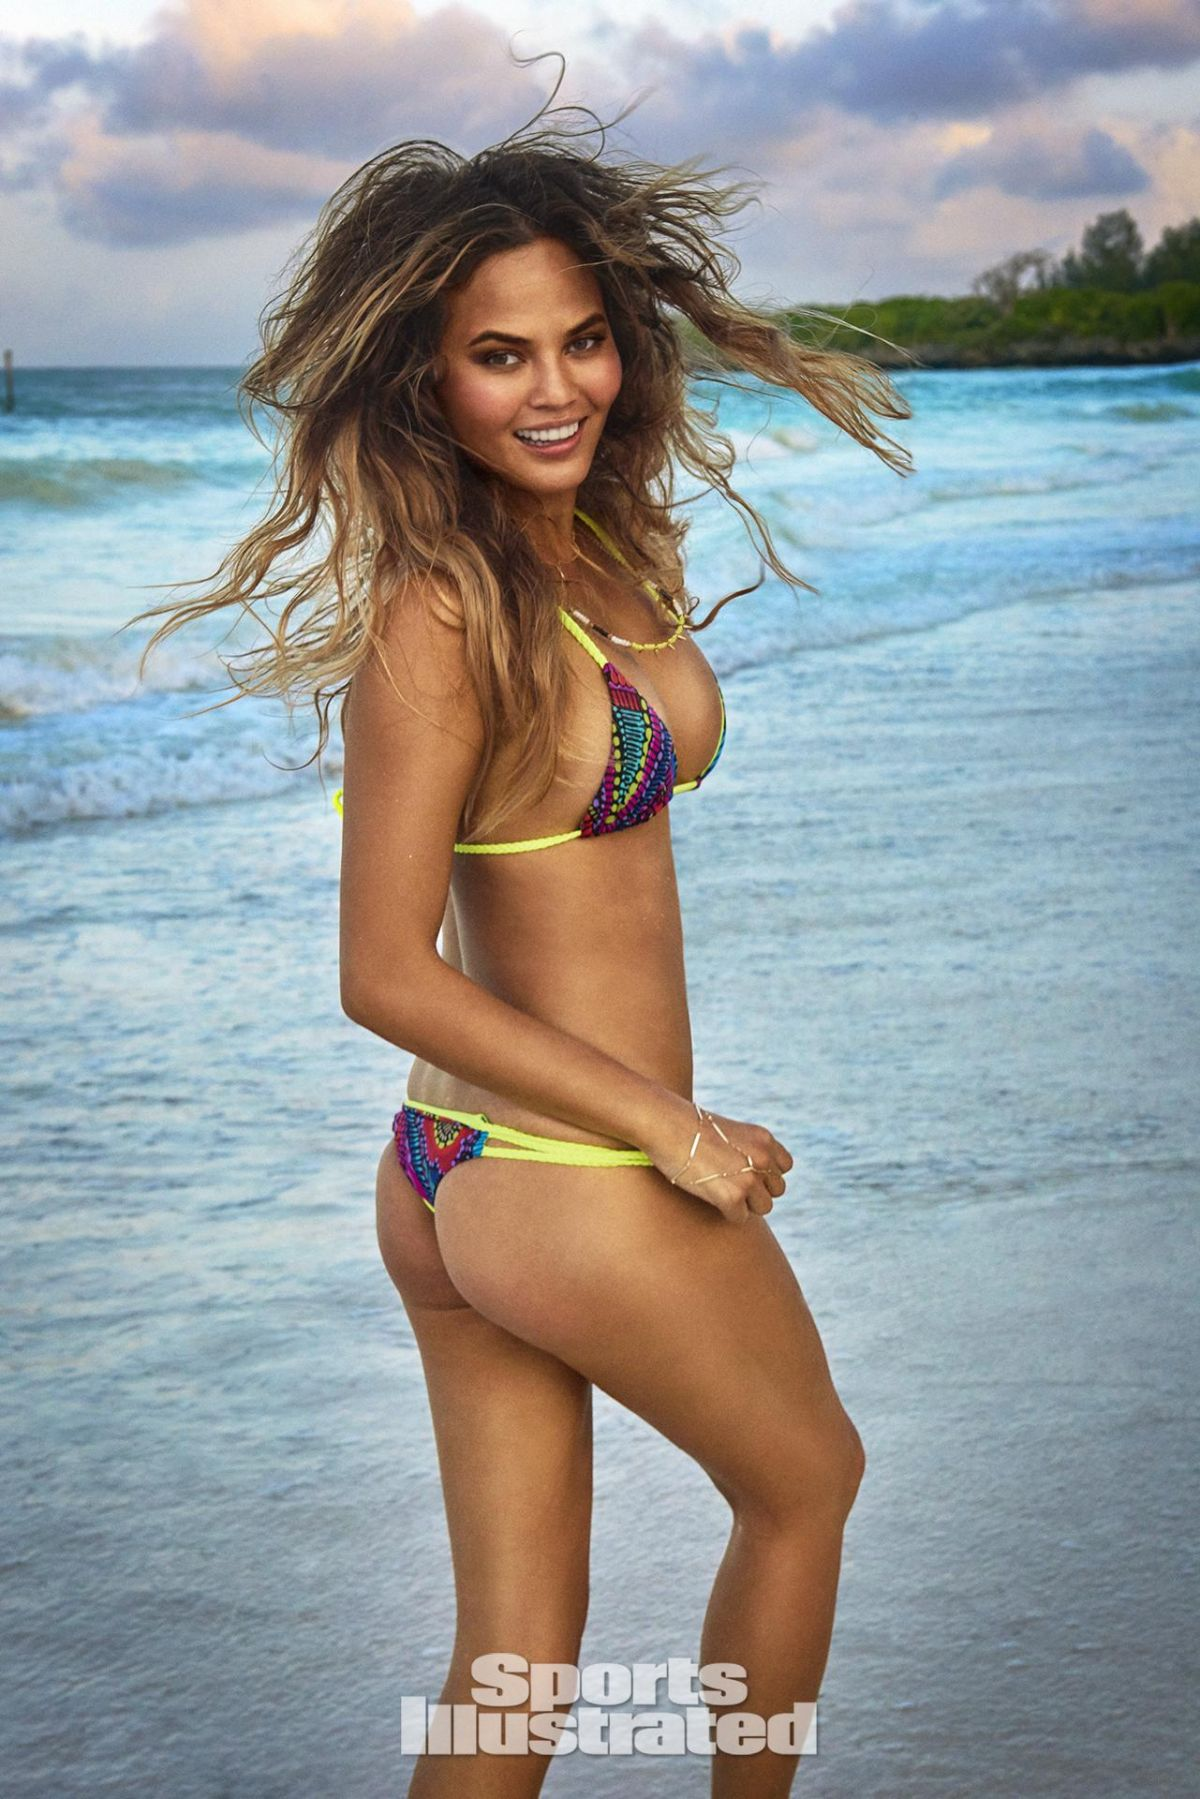 CHRISSY TEIGEN in Sports Illustrated Swimsuit Issue 2016 - HawtCelebs ...